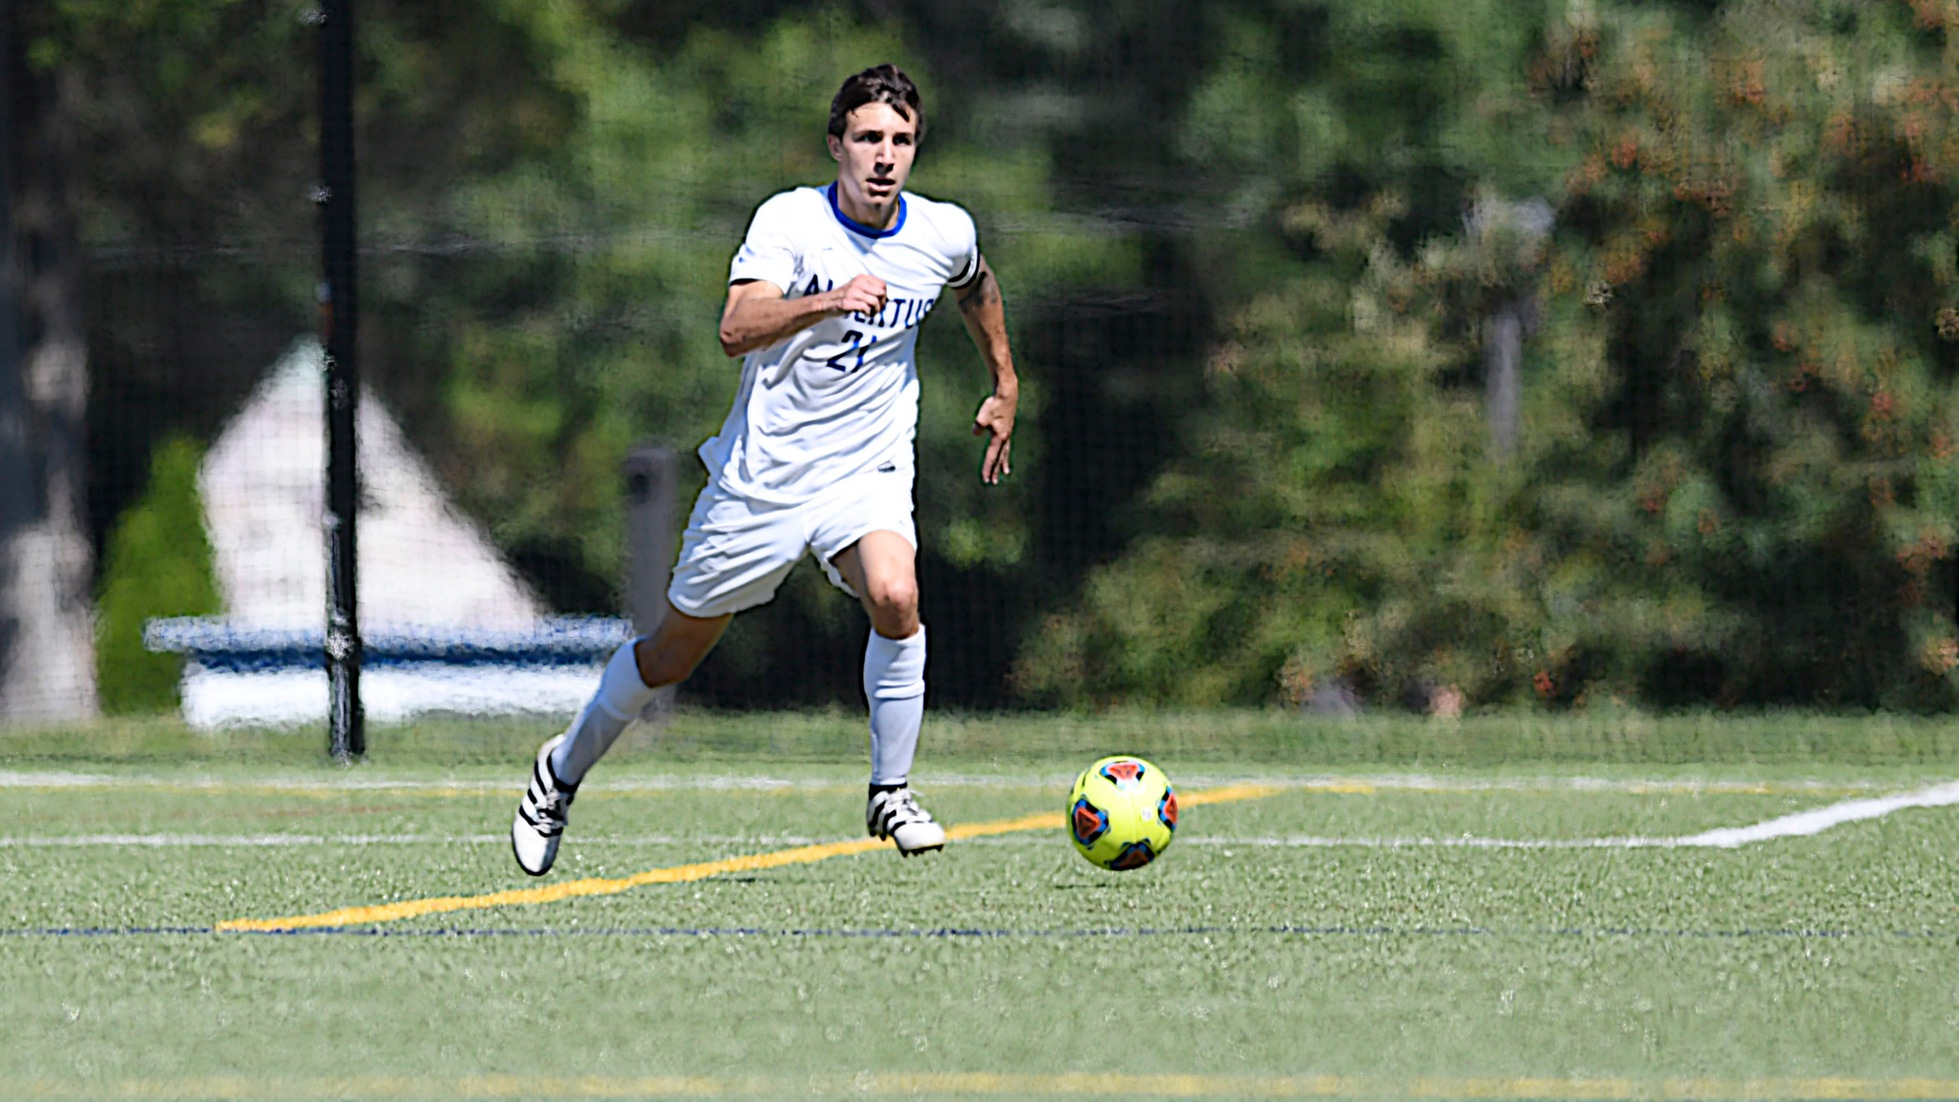 Saad Nets Game-Winner as Men's Soccer Beats Suffolk, 3-2